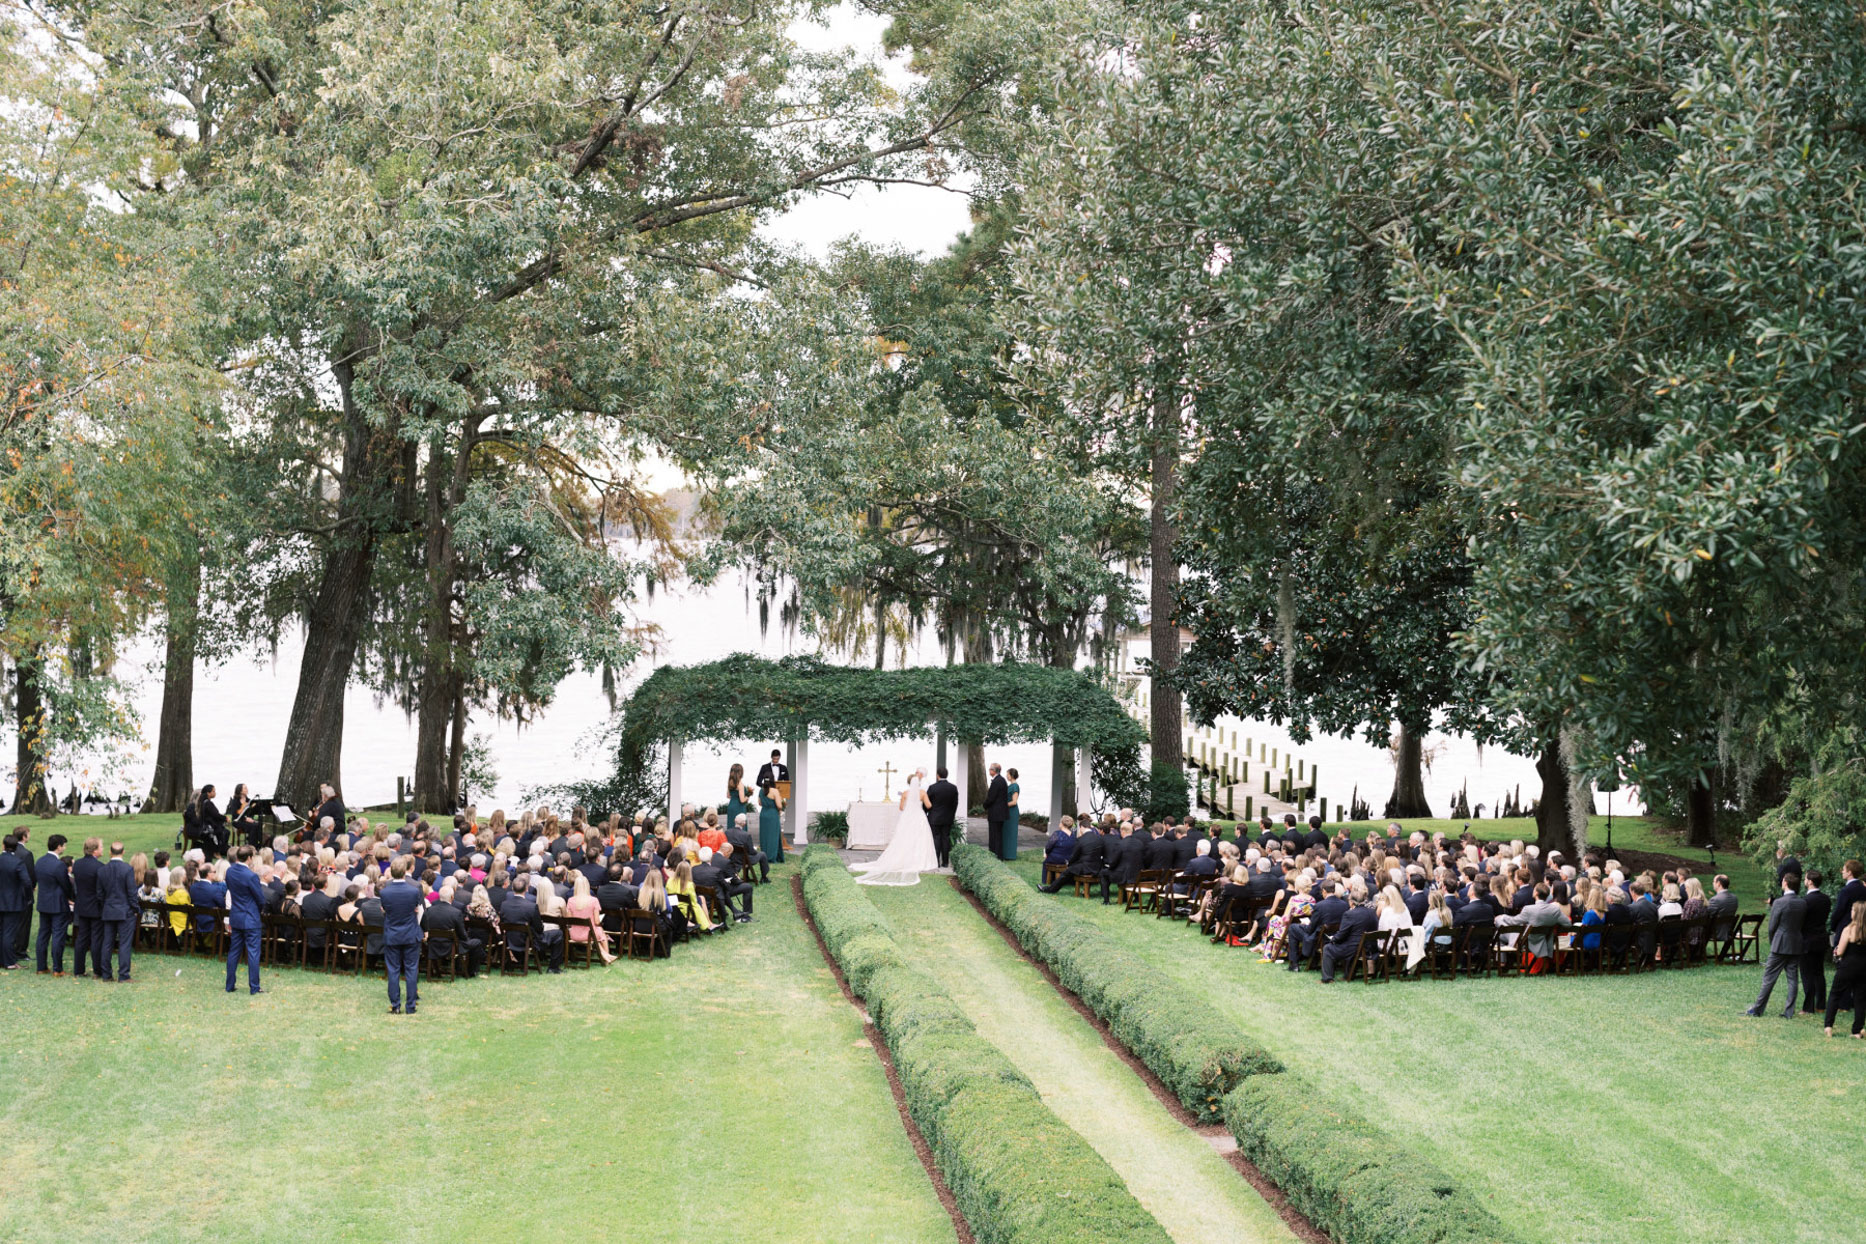 wedding ceremony by river surrounded by trees